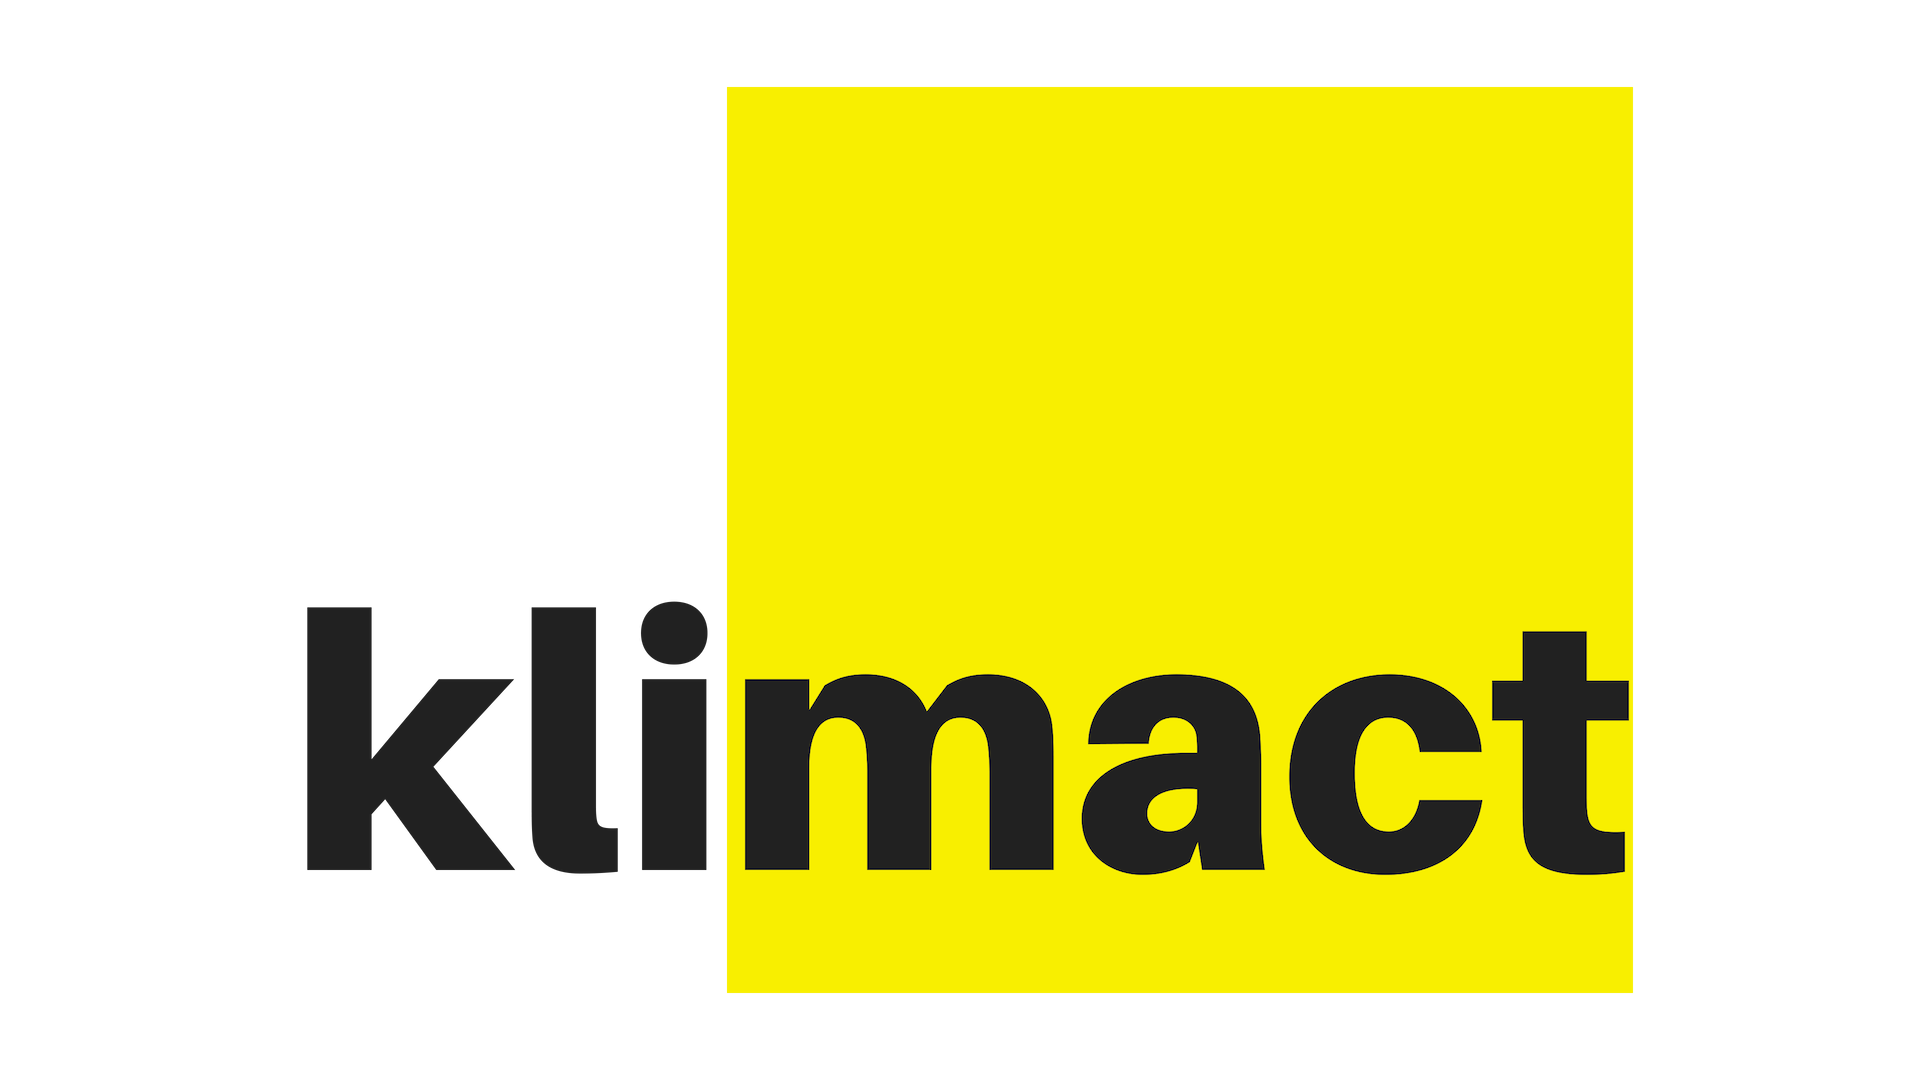 Klimact Foundation